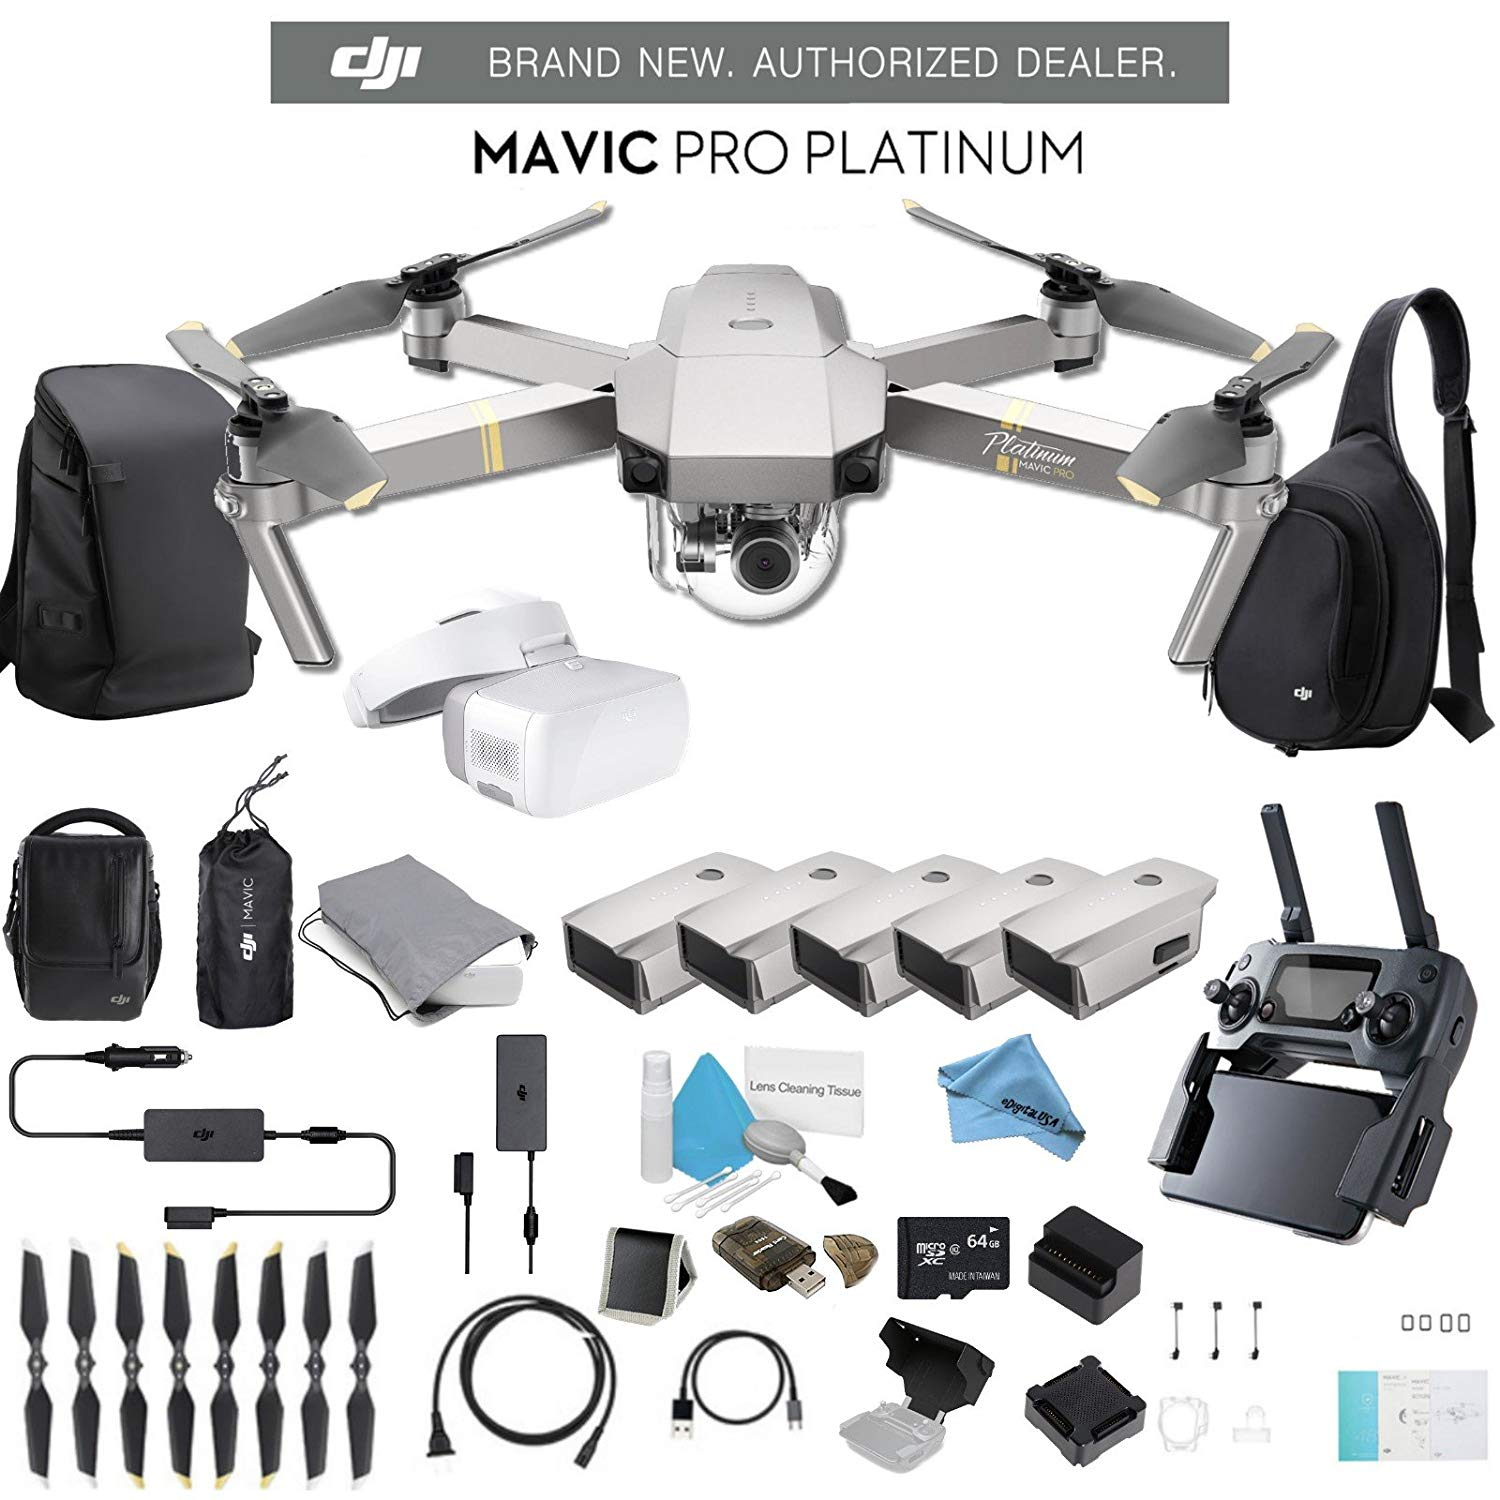 DJI Mavic Pro Platinum Fly More Combo CP.PT.00000069.01 + FPV Goggles + 2 DJI Intelligent Flight Battery for Mavic Pro Platinum ( 5 Total) + Carrying Case and Much More.